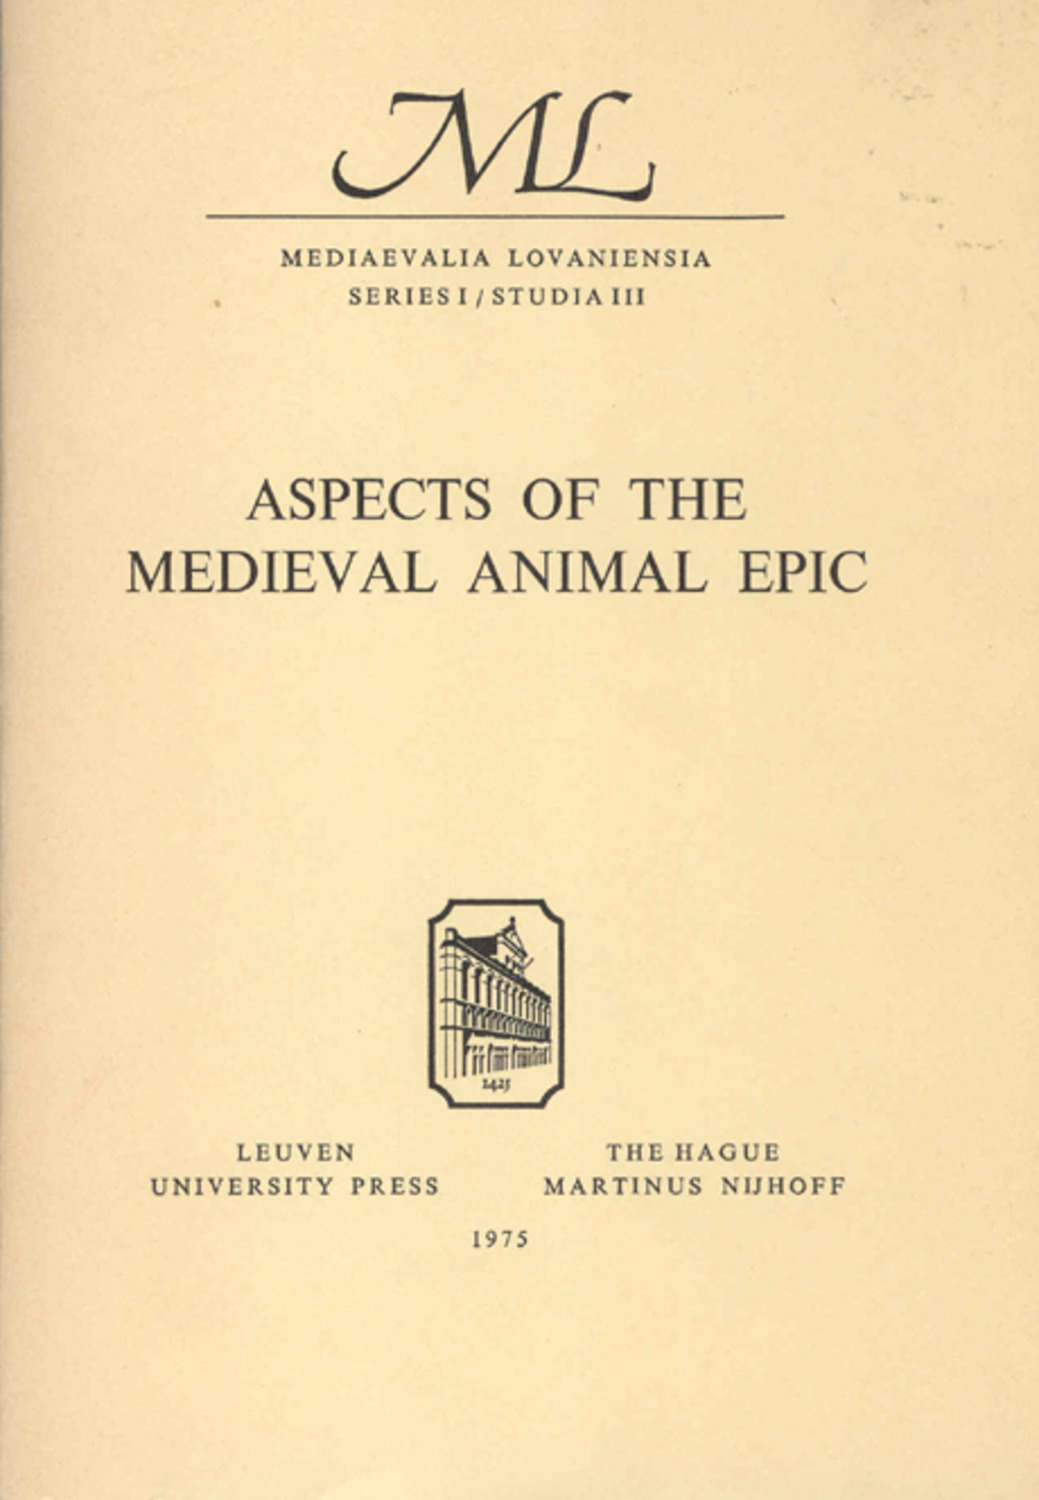 Aspects of the Medieval Animal Epic